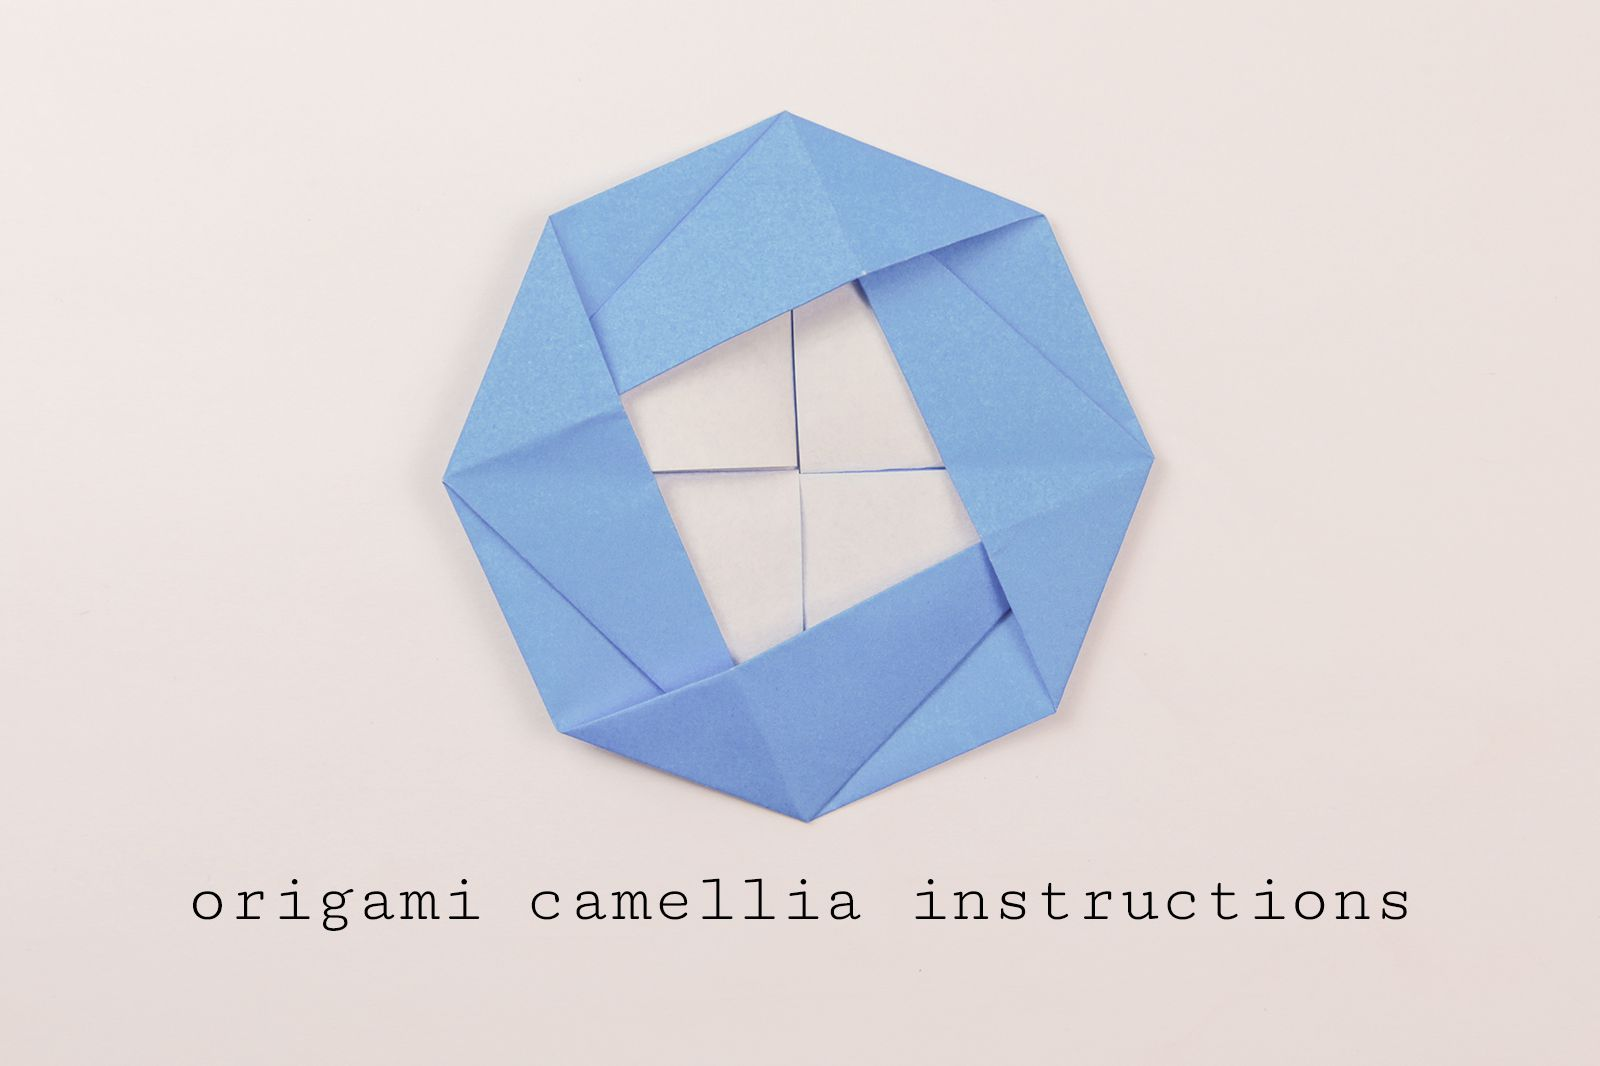 Traditional Origami Camellia Instructions Central Lookup Model Diagrams Stepbystep